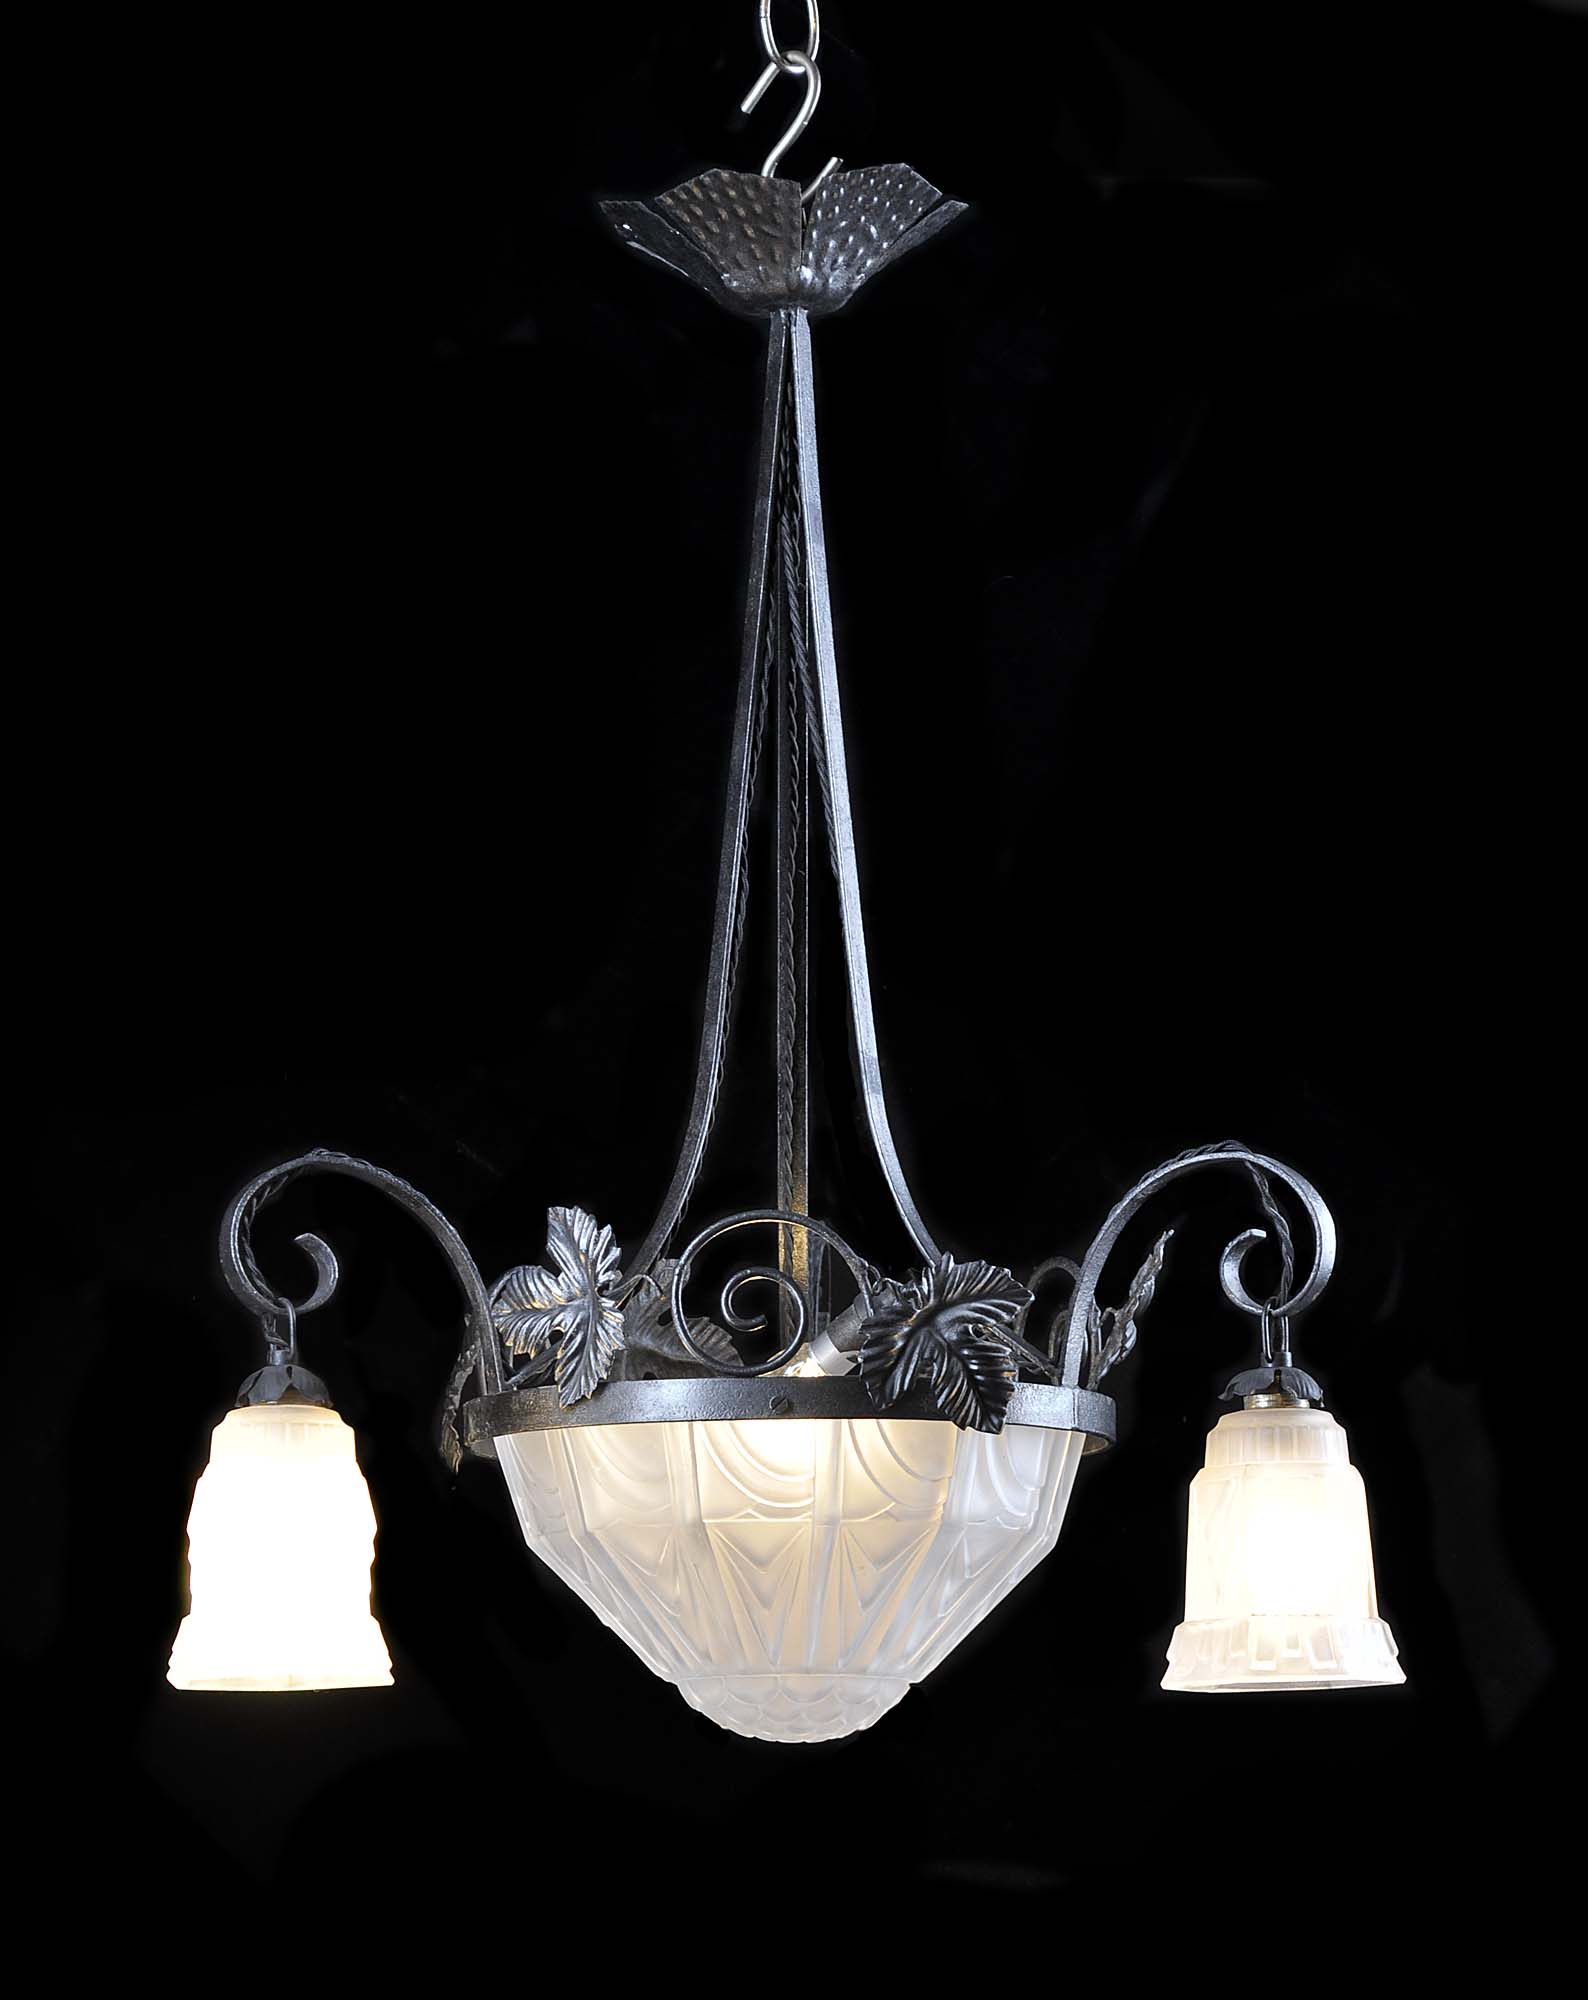 An Art Deco glass and patinated bronze ceiling light